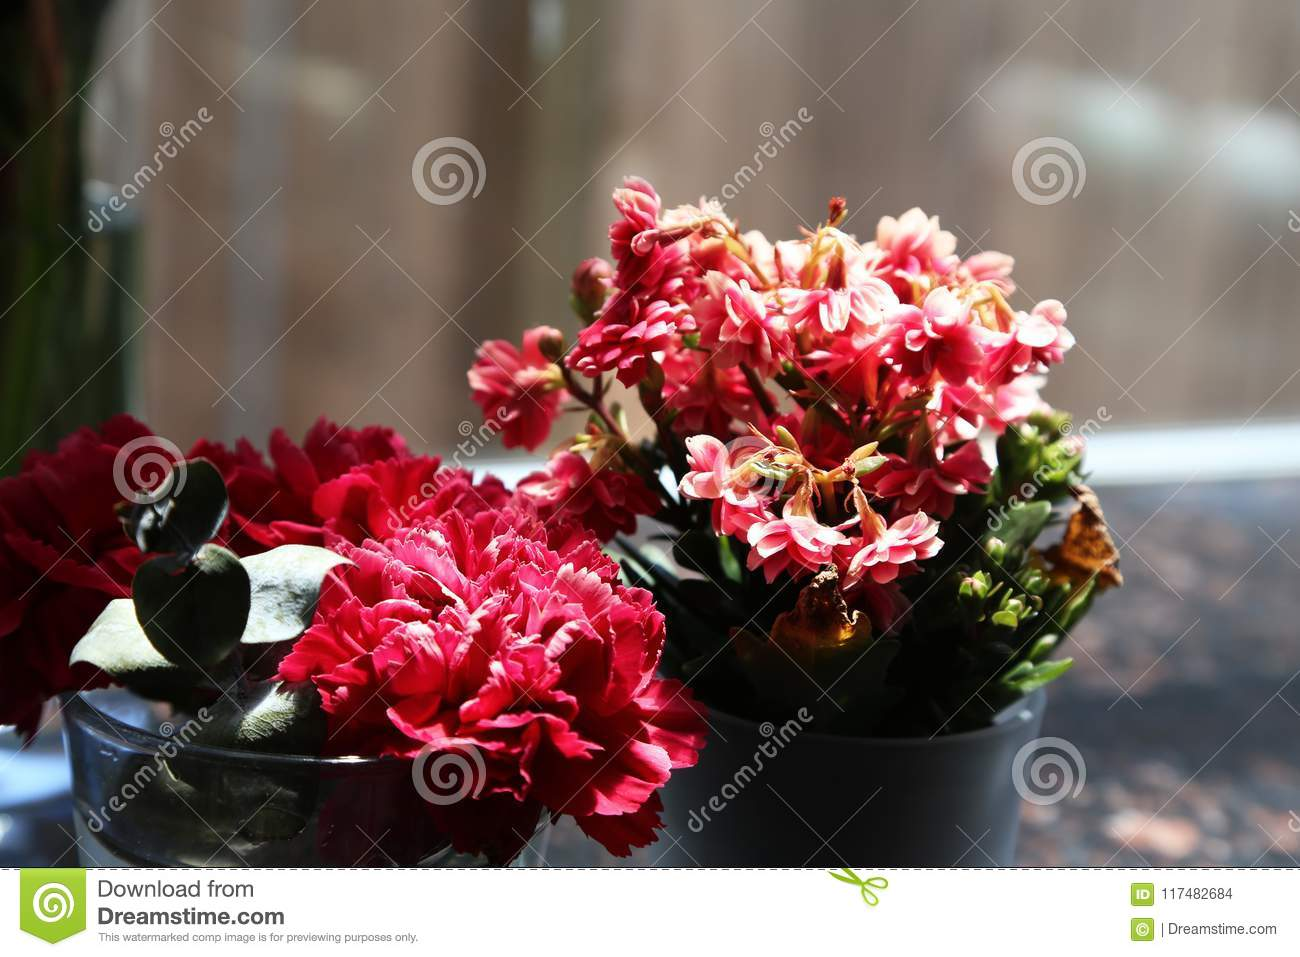 Beautiful pink flowers used for decoration stock photo image of two bouquets of beautiful pink flowers used for decoration izmirmasajfo